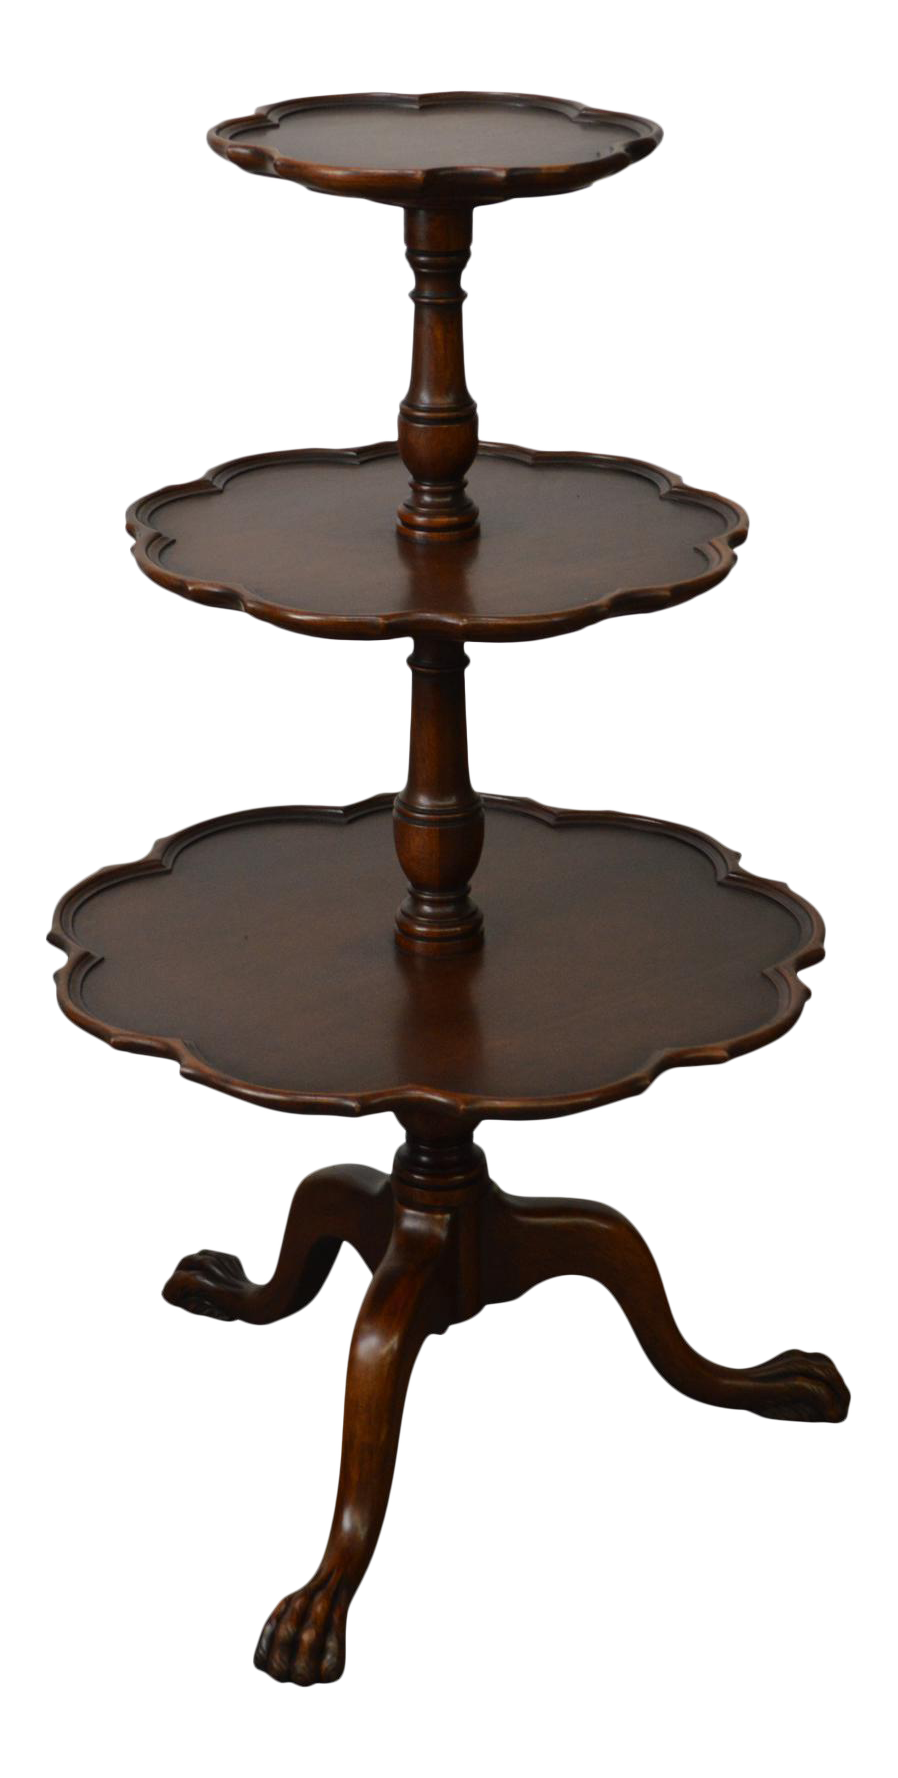 Vintage Mahogany Chippendale Style Claw Foot 3 Tier Dumbwaiter Table - Image 1 of 11